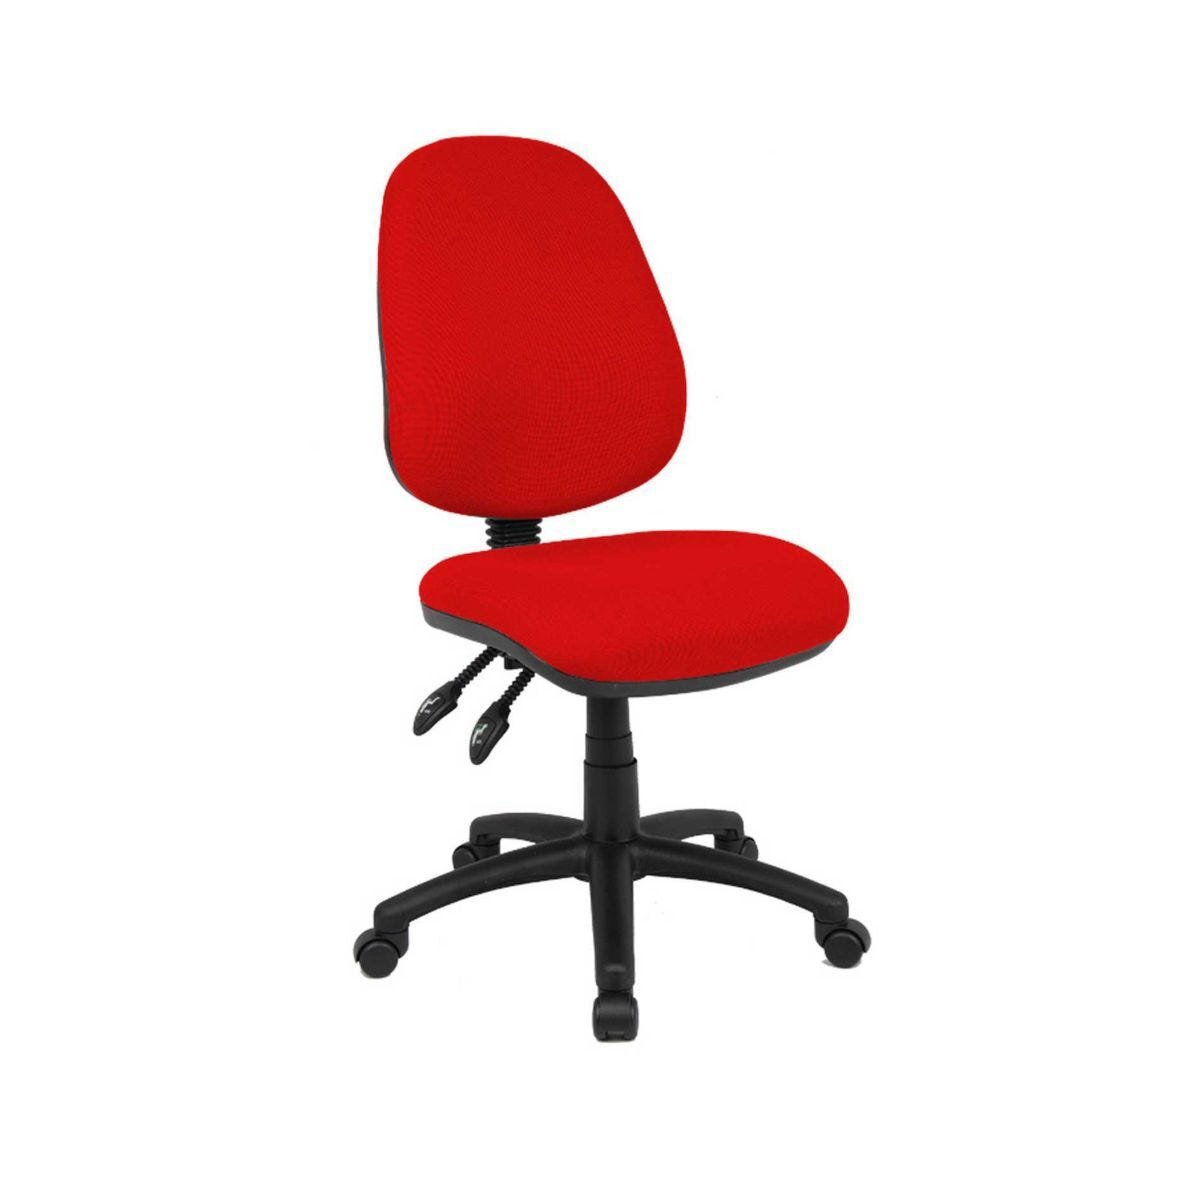 Fabric Operator Chair Twin Lever Mechanism Height 460 or 570mm Red Upholstered